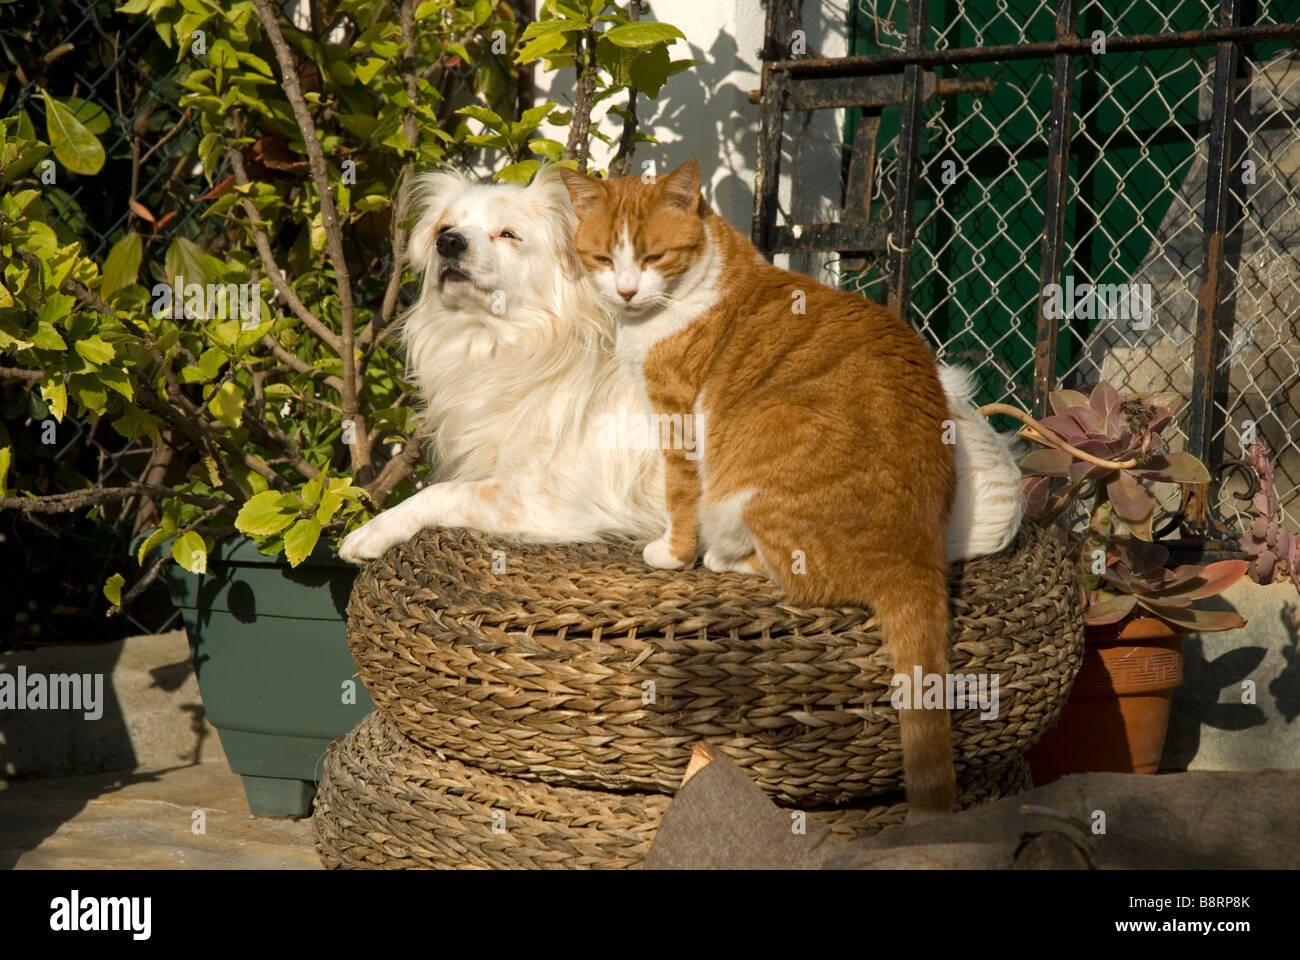 Small white dog and ginger cat sitting on wicker stool in garden ...